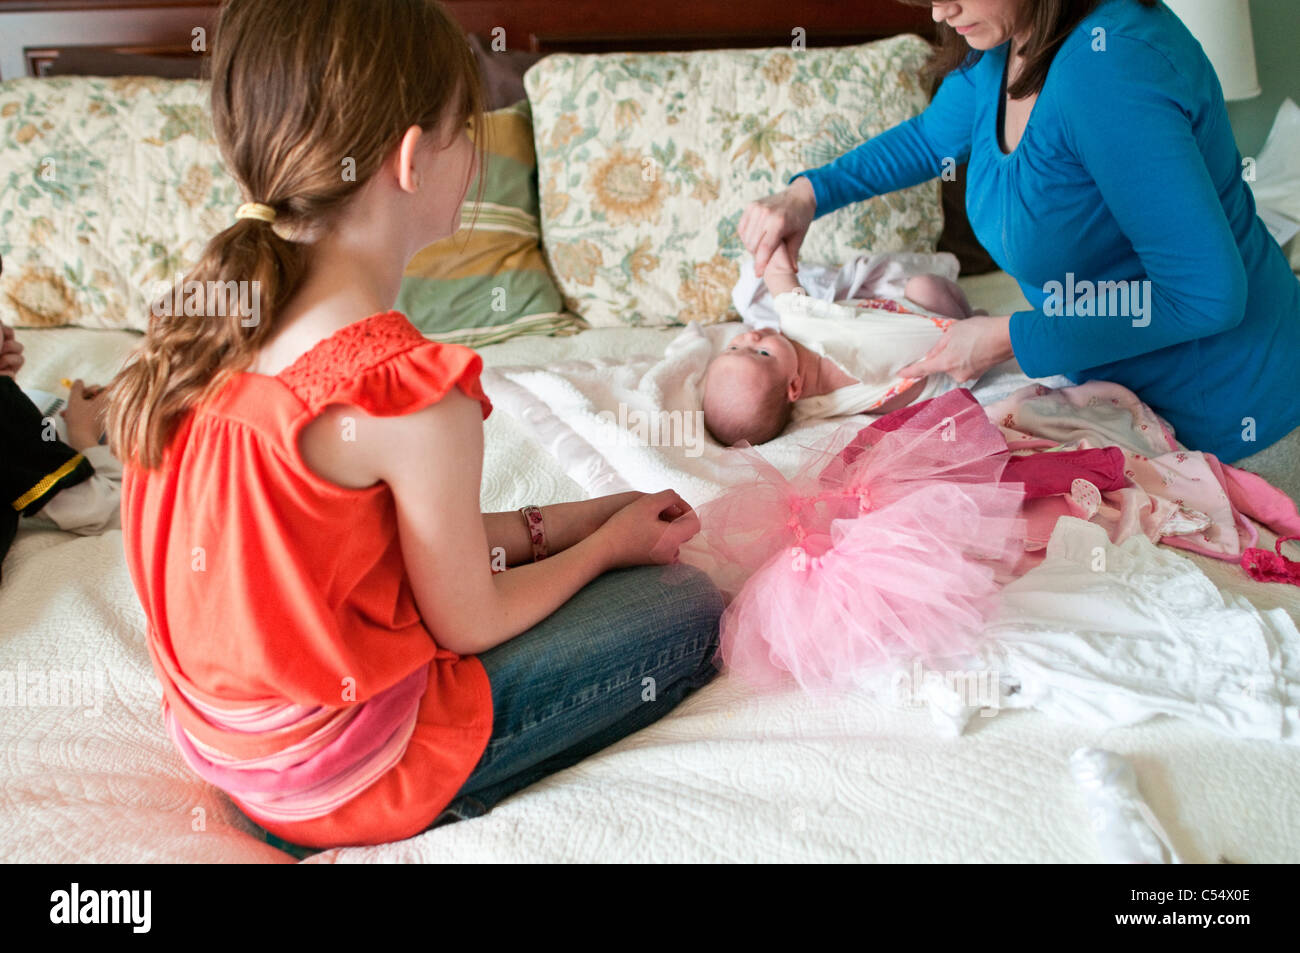 Aider fille mère dressing up baby girl on bed Banque D'Images